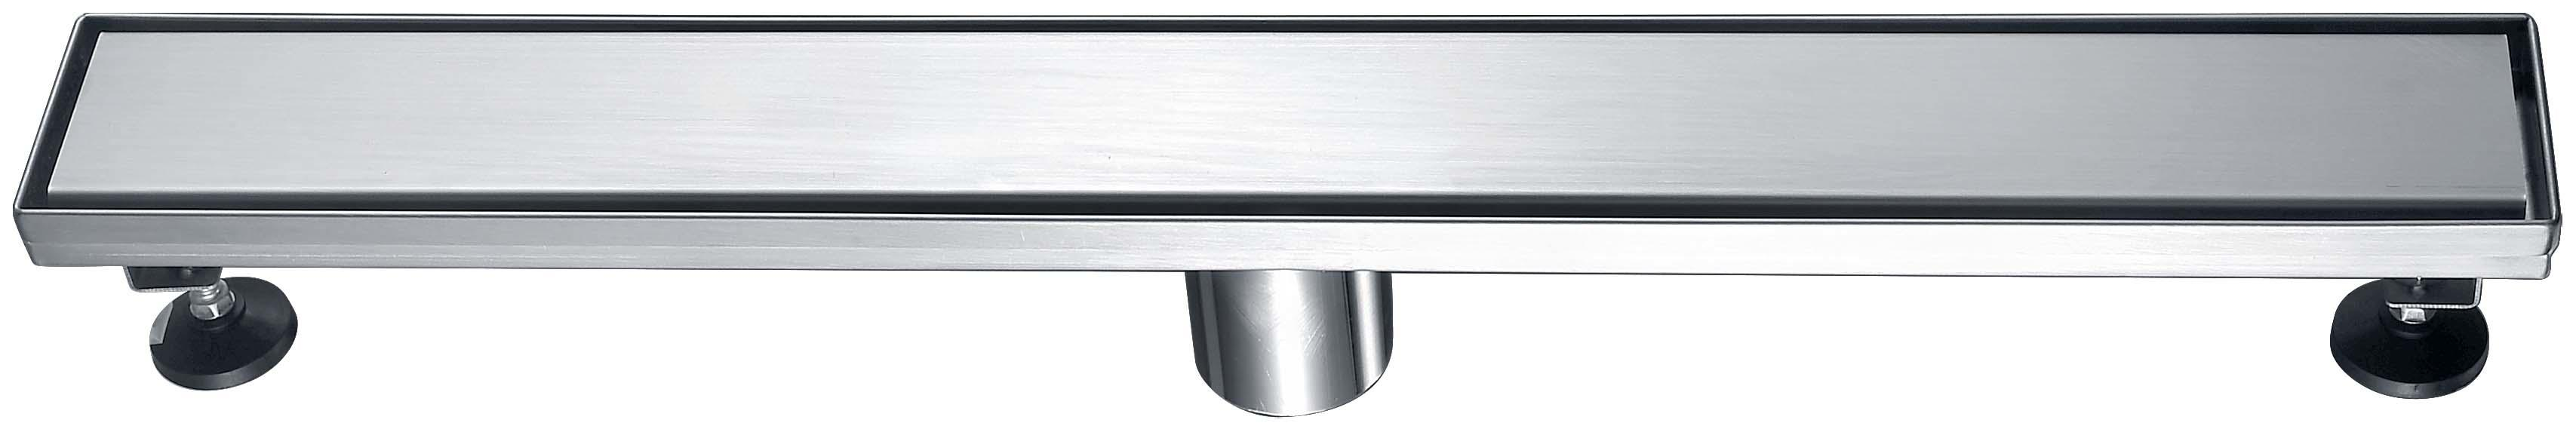 Norye foldable stainless steel drain design for bathroom-1